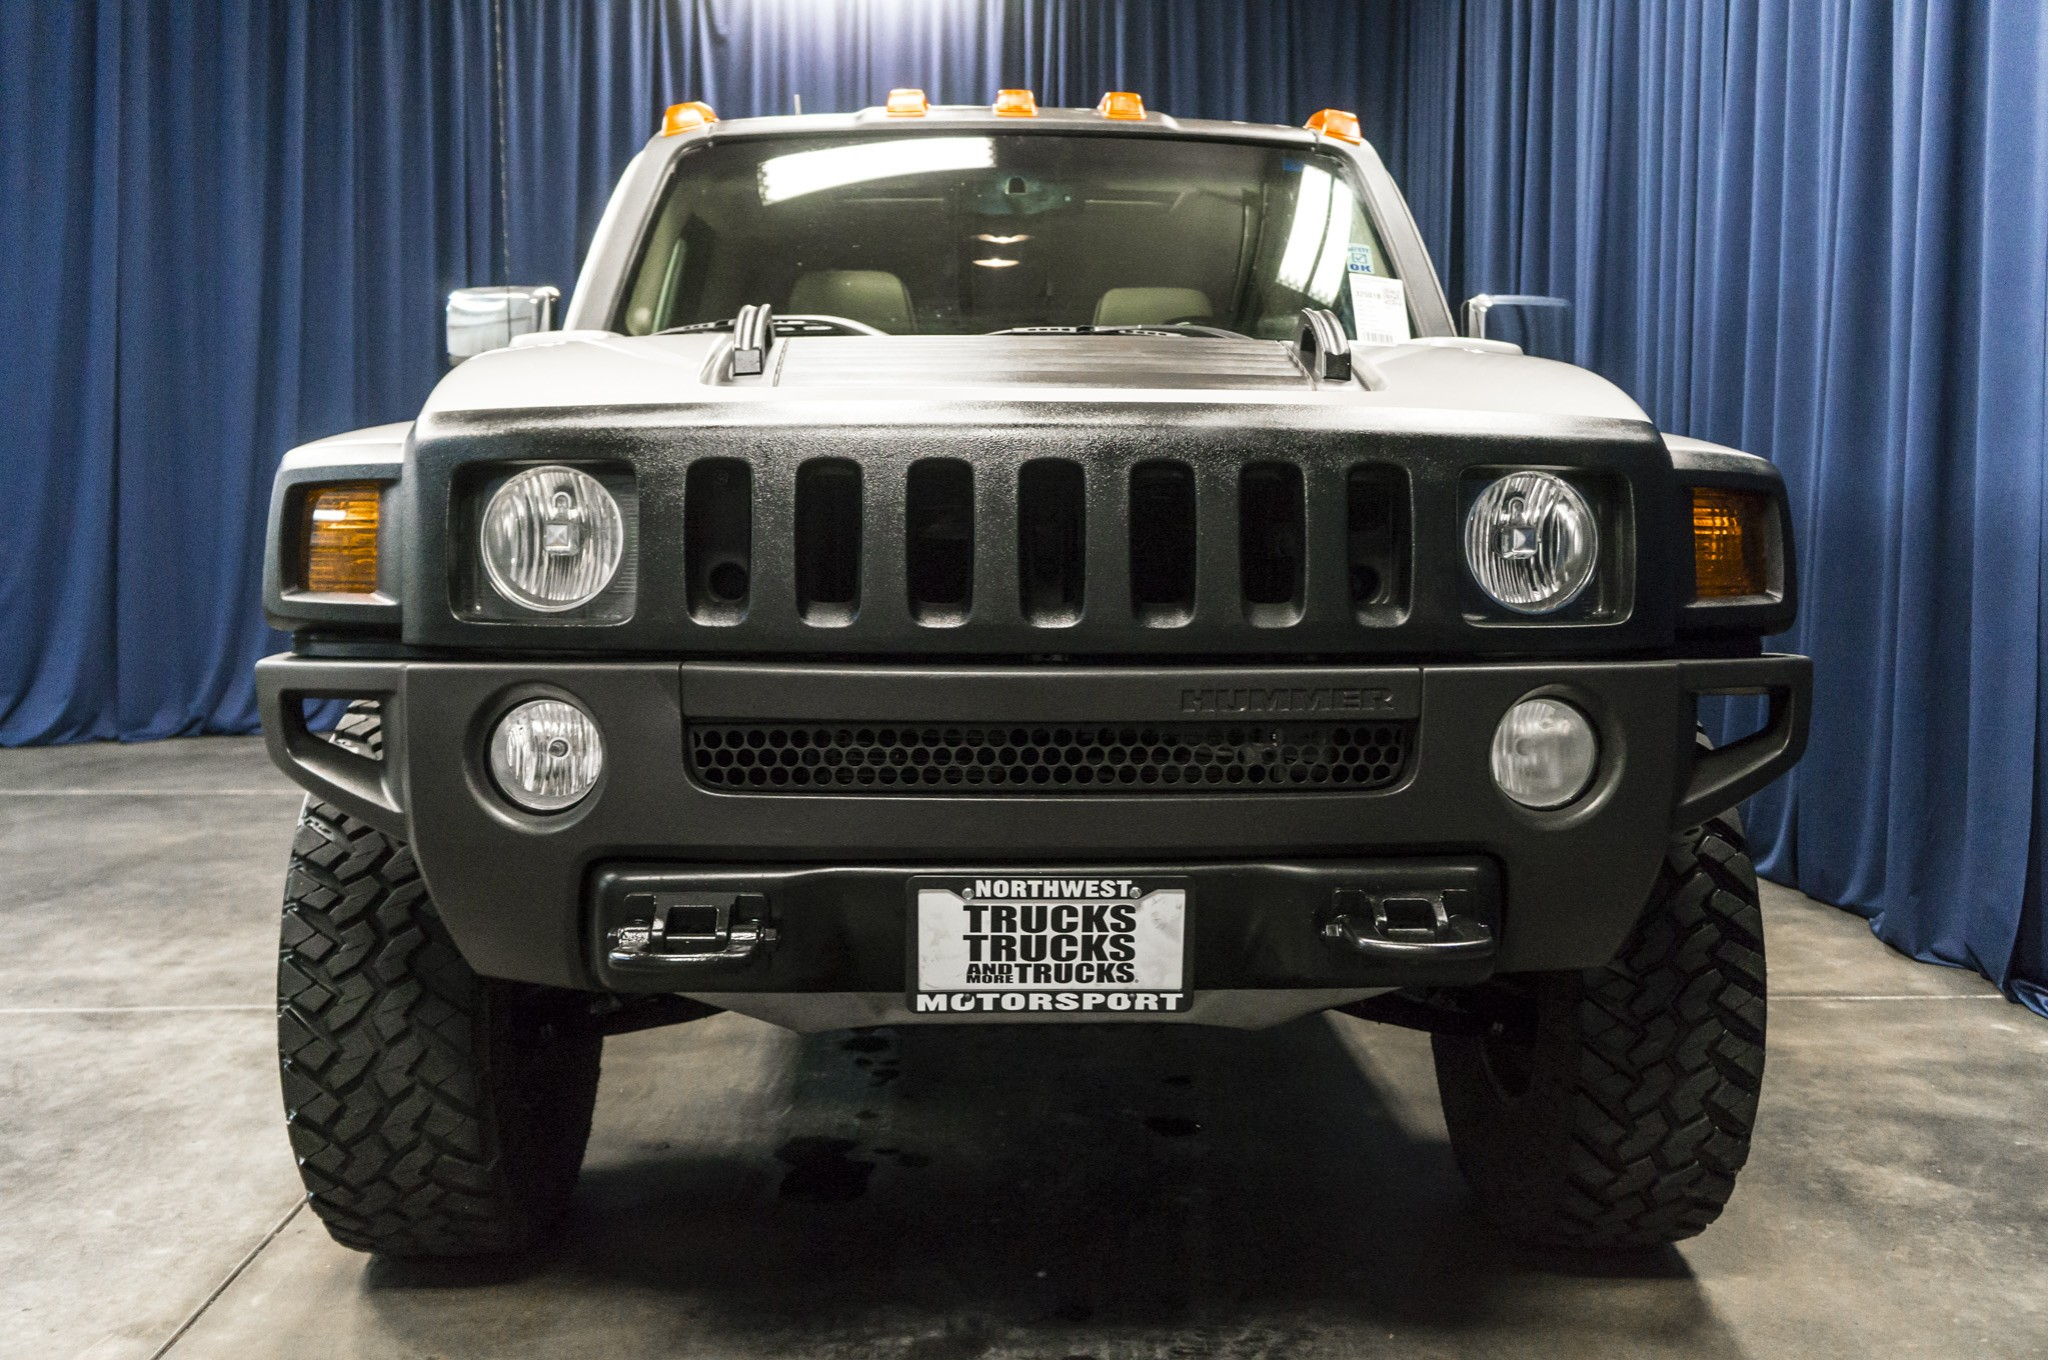 2007 Hummer H3 4x4 Northwest Motorsport